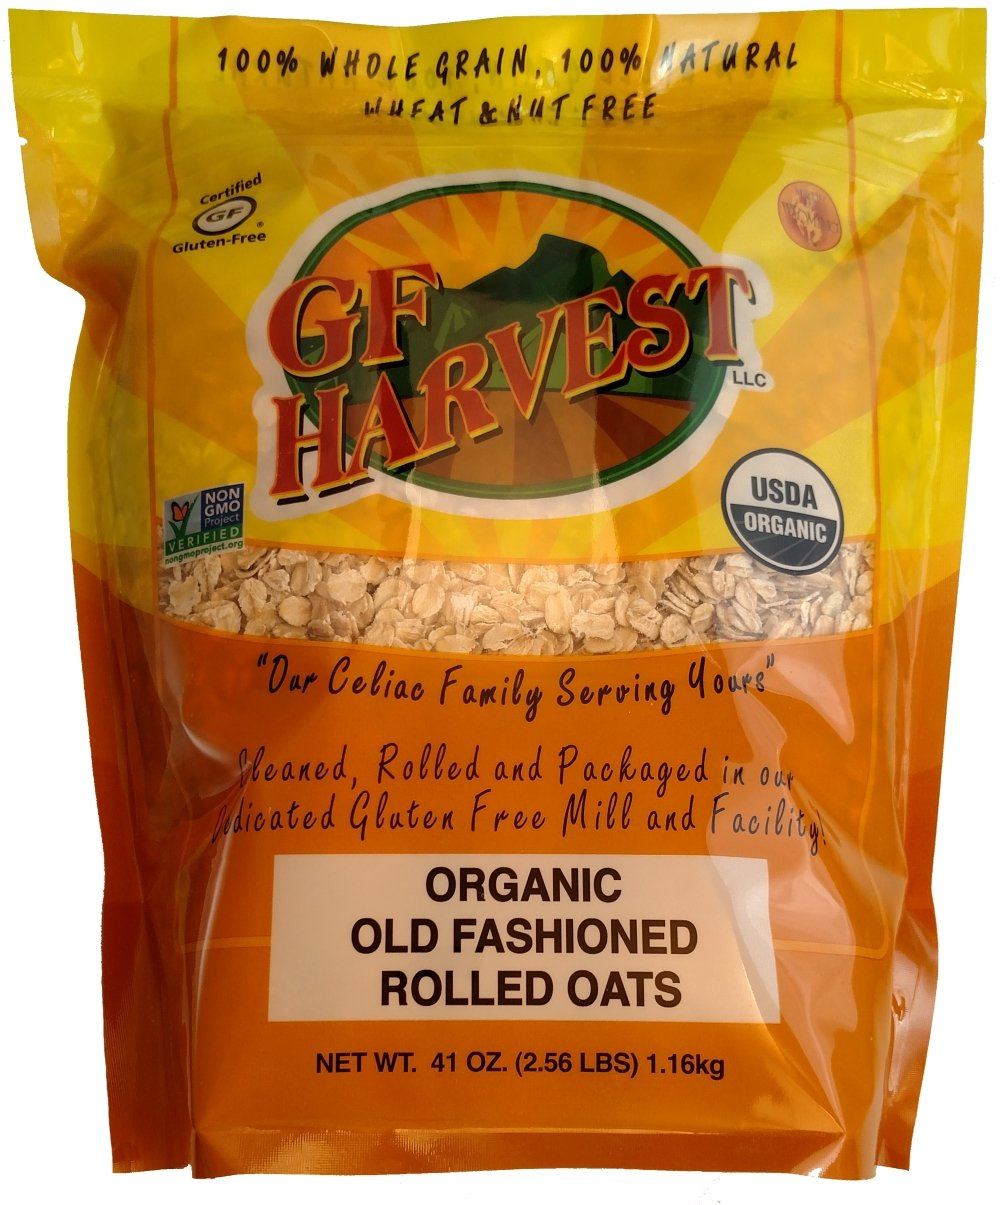 GF Harvest Gluten Free Certified Organic Rolled Oats, Non GMO, 41oz Bag